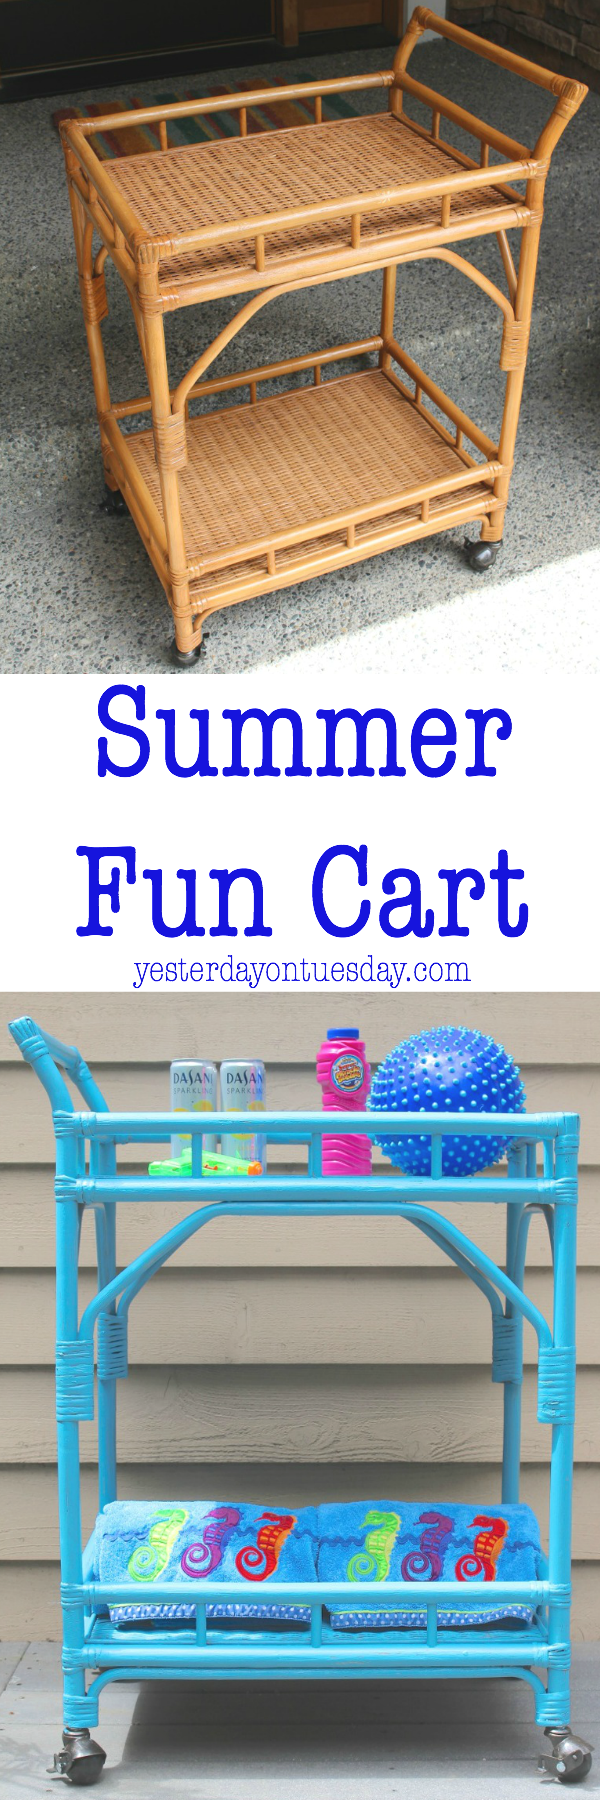 Summer Fun Cart: How to transform a plain beverage cart into a Summer Fun Cart.